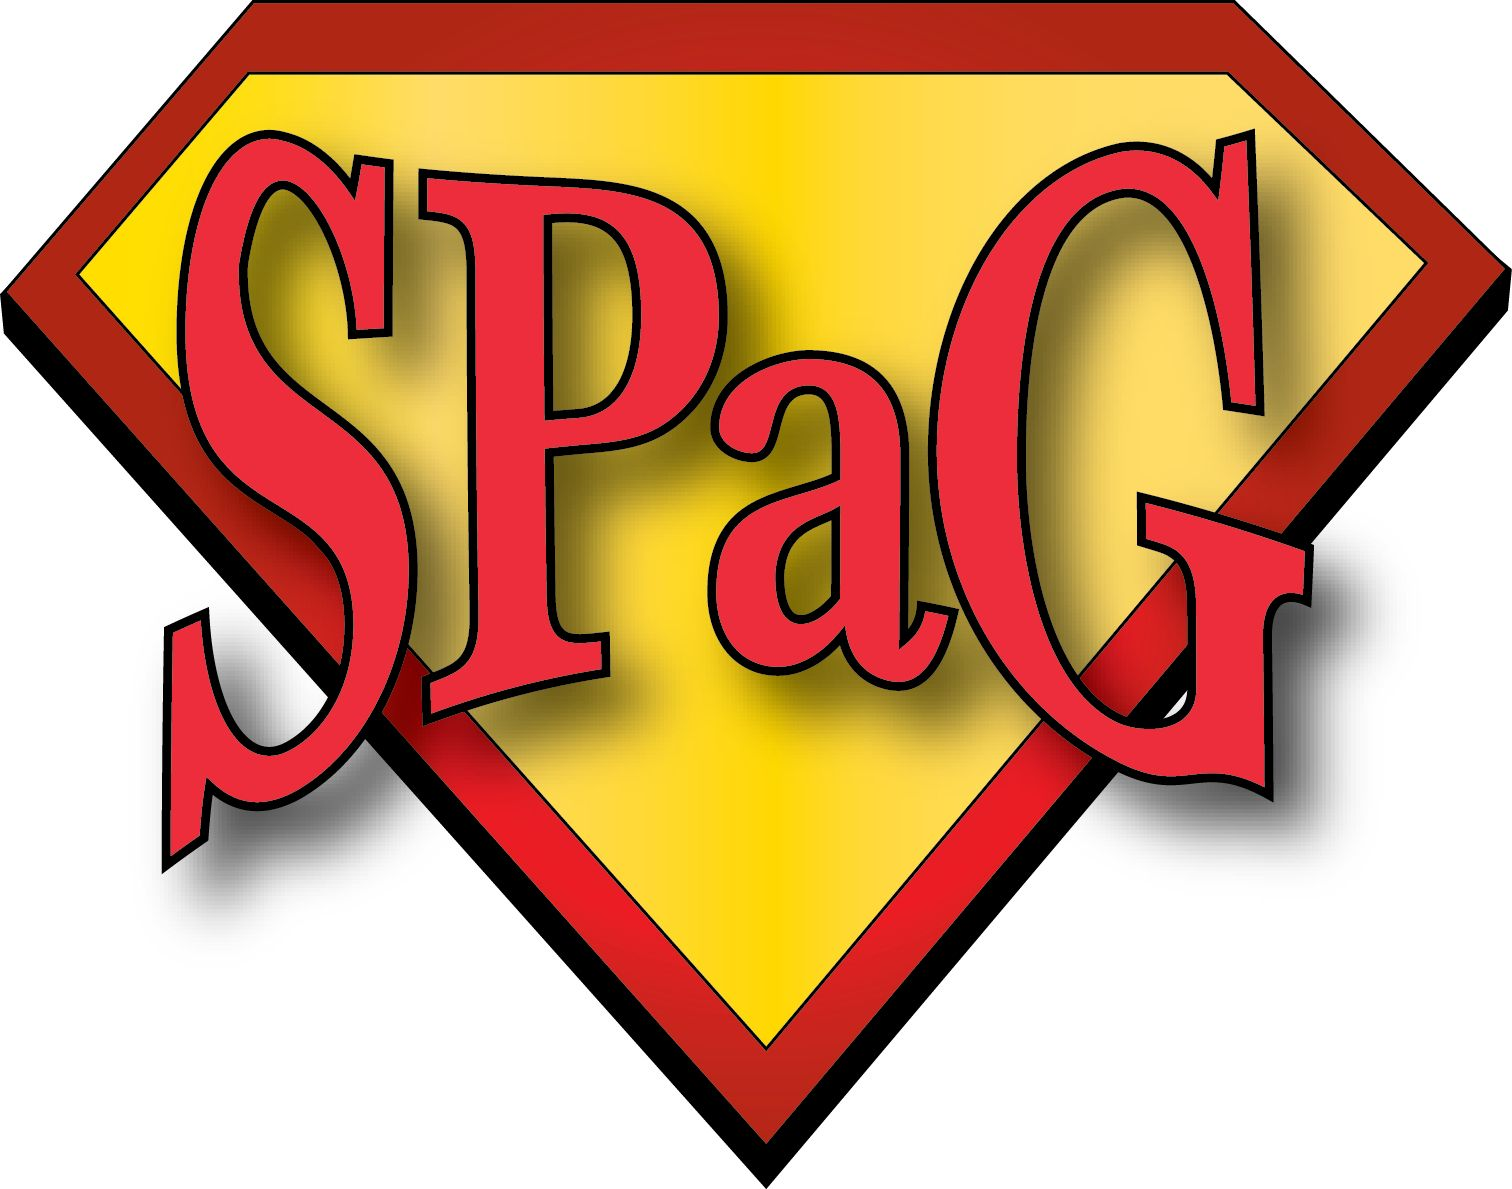 SPaGman logo - using on bookmarks, placemats & displays to try and ...